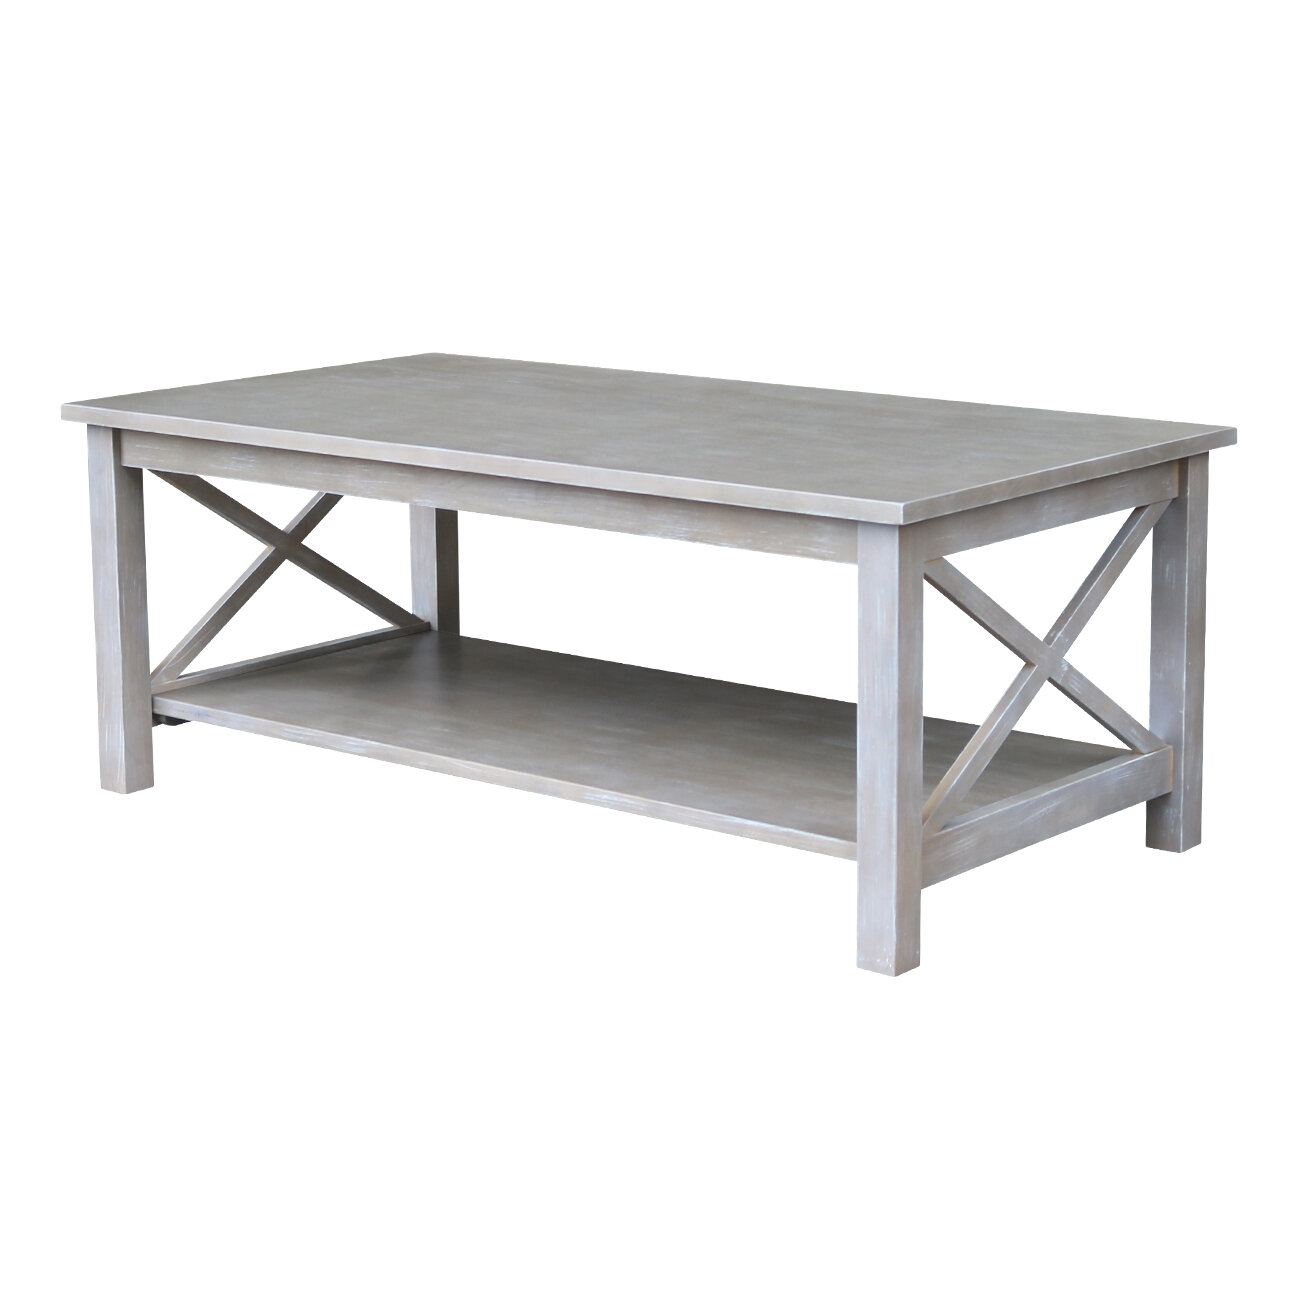 49 Coffee Table Nickel Finish Solid Iron Casters: Highland Dunes Gabby Coffee Table